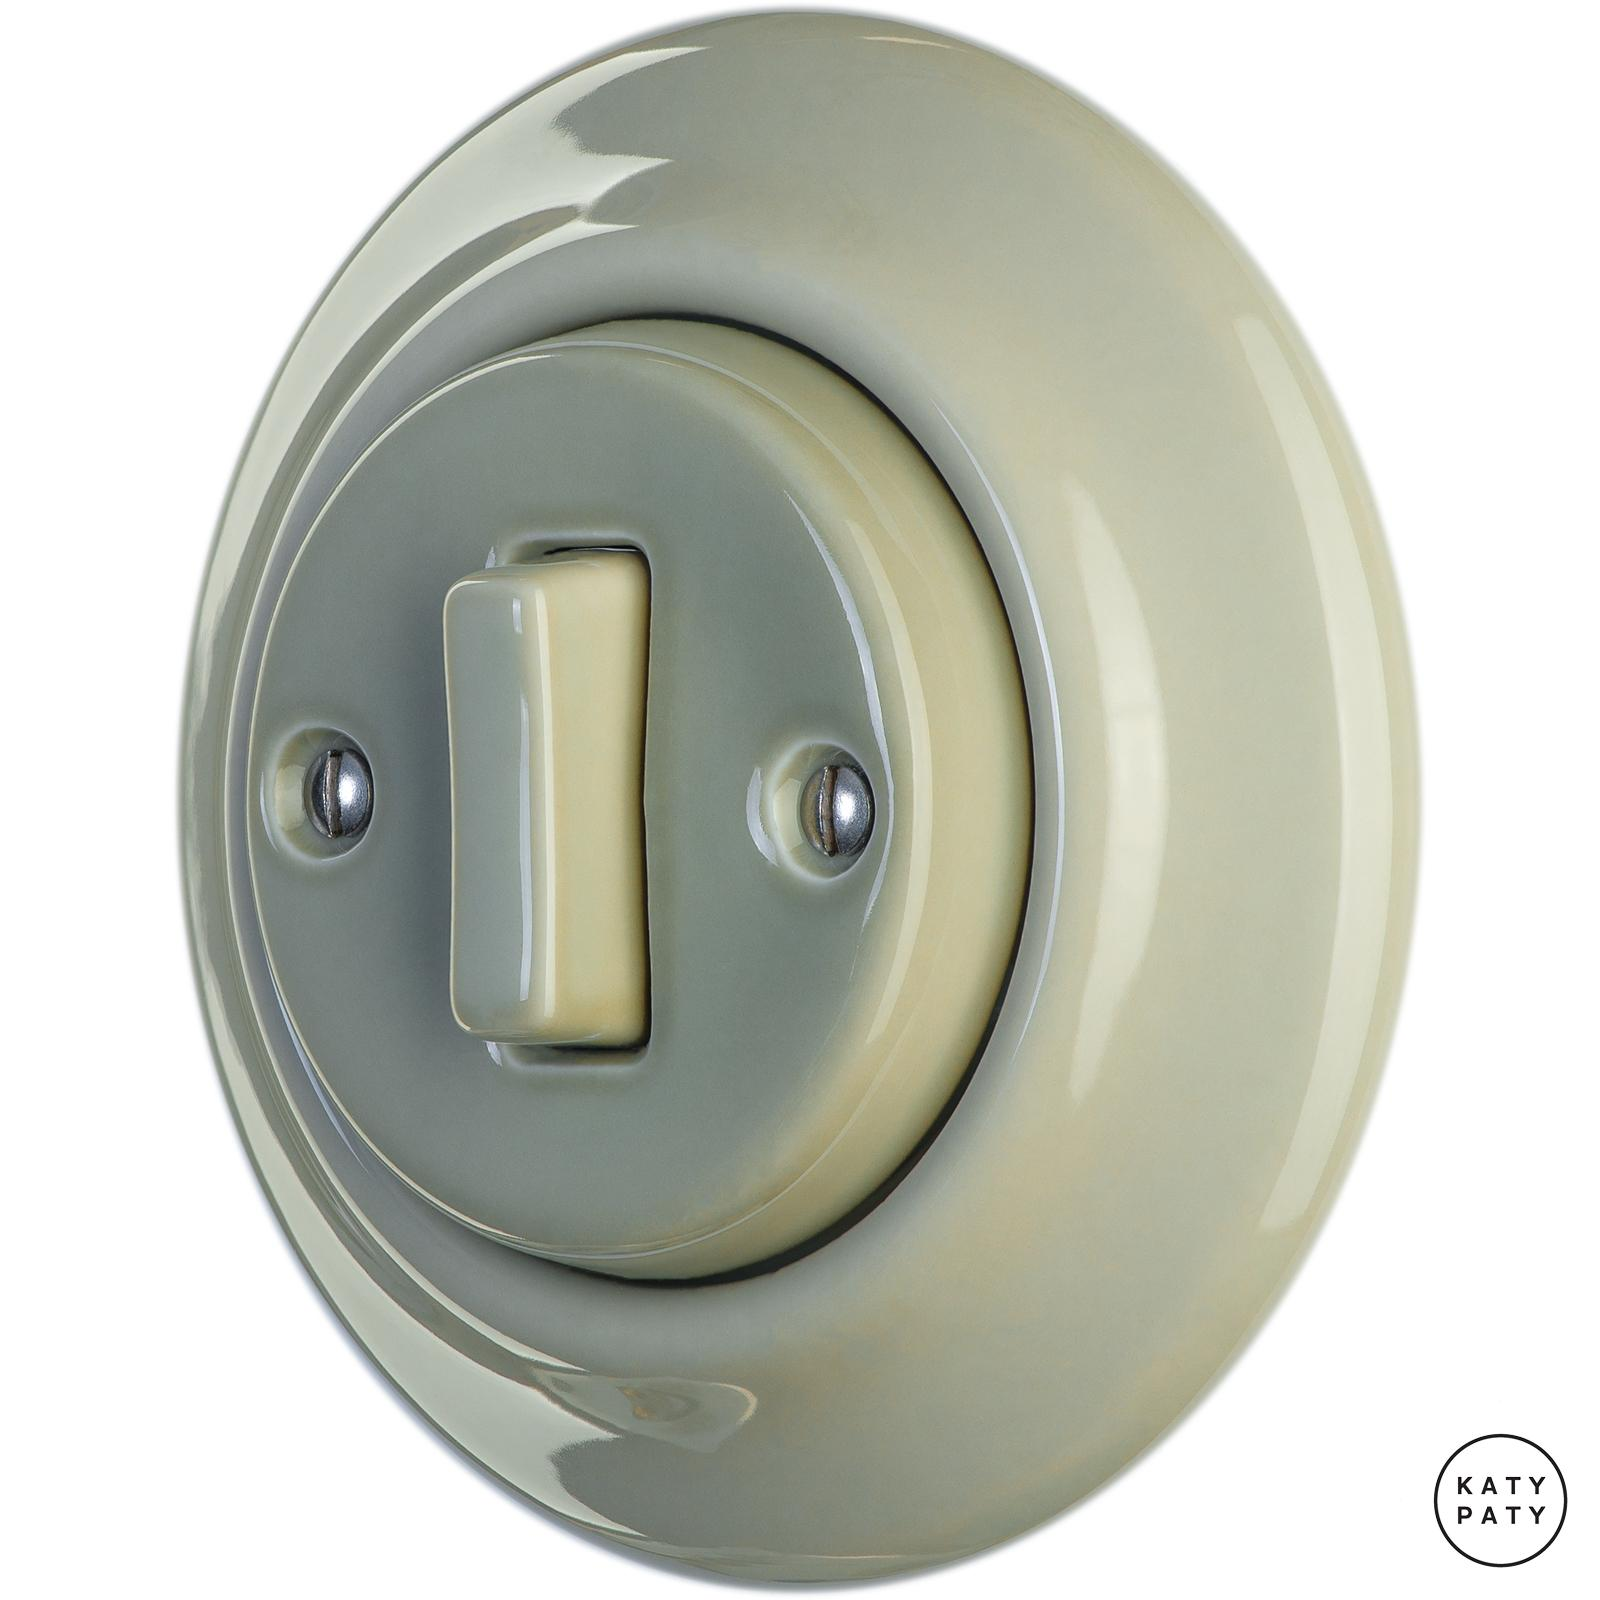 Porcelain switches - a single gang - SLIM ()  - CHLORA | Katy Paty